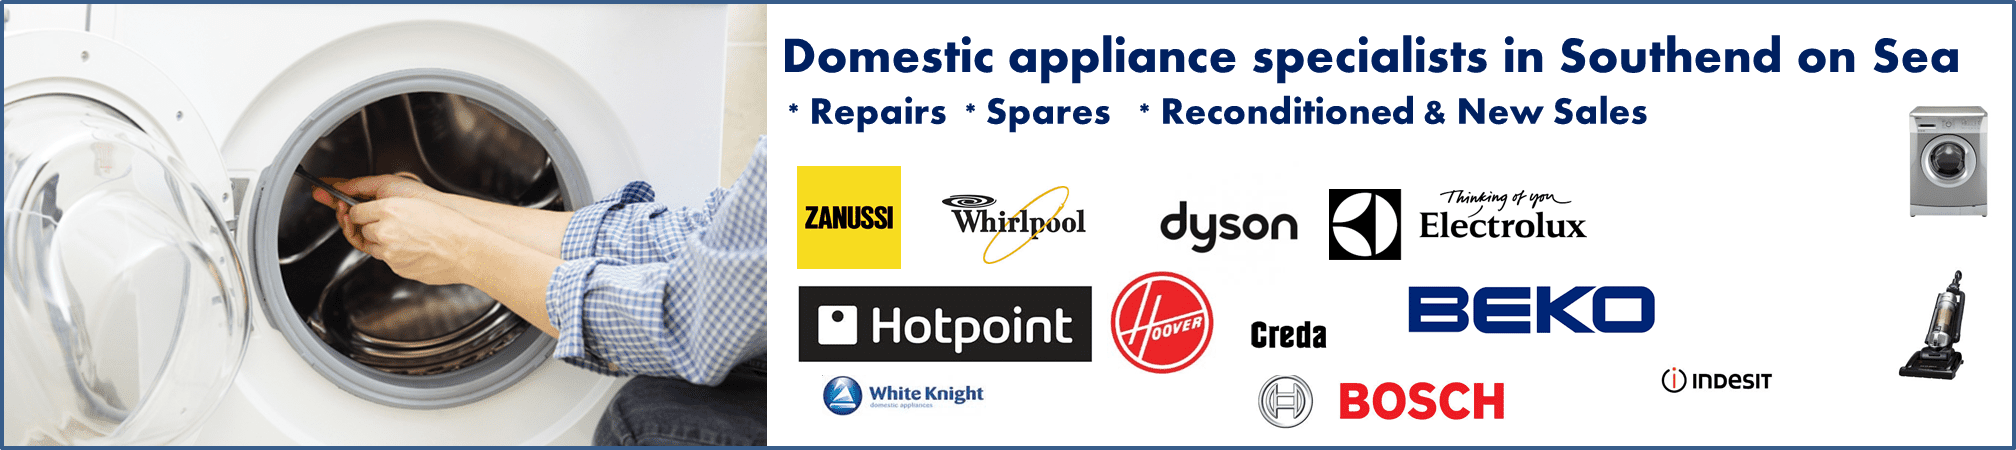 for-domestic-appliance-repairs-in-southend-on-sea-call-gates-domestic-services-appliance-repairs_and-new-appliances